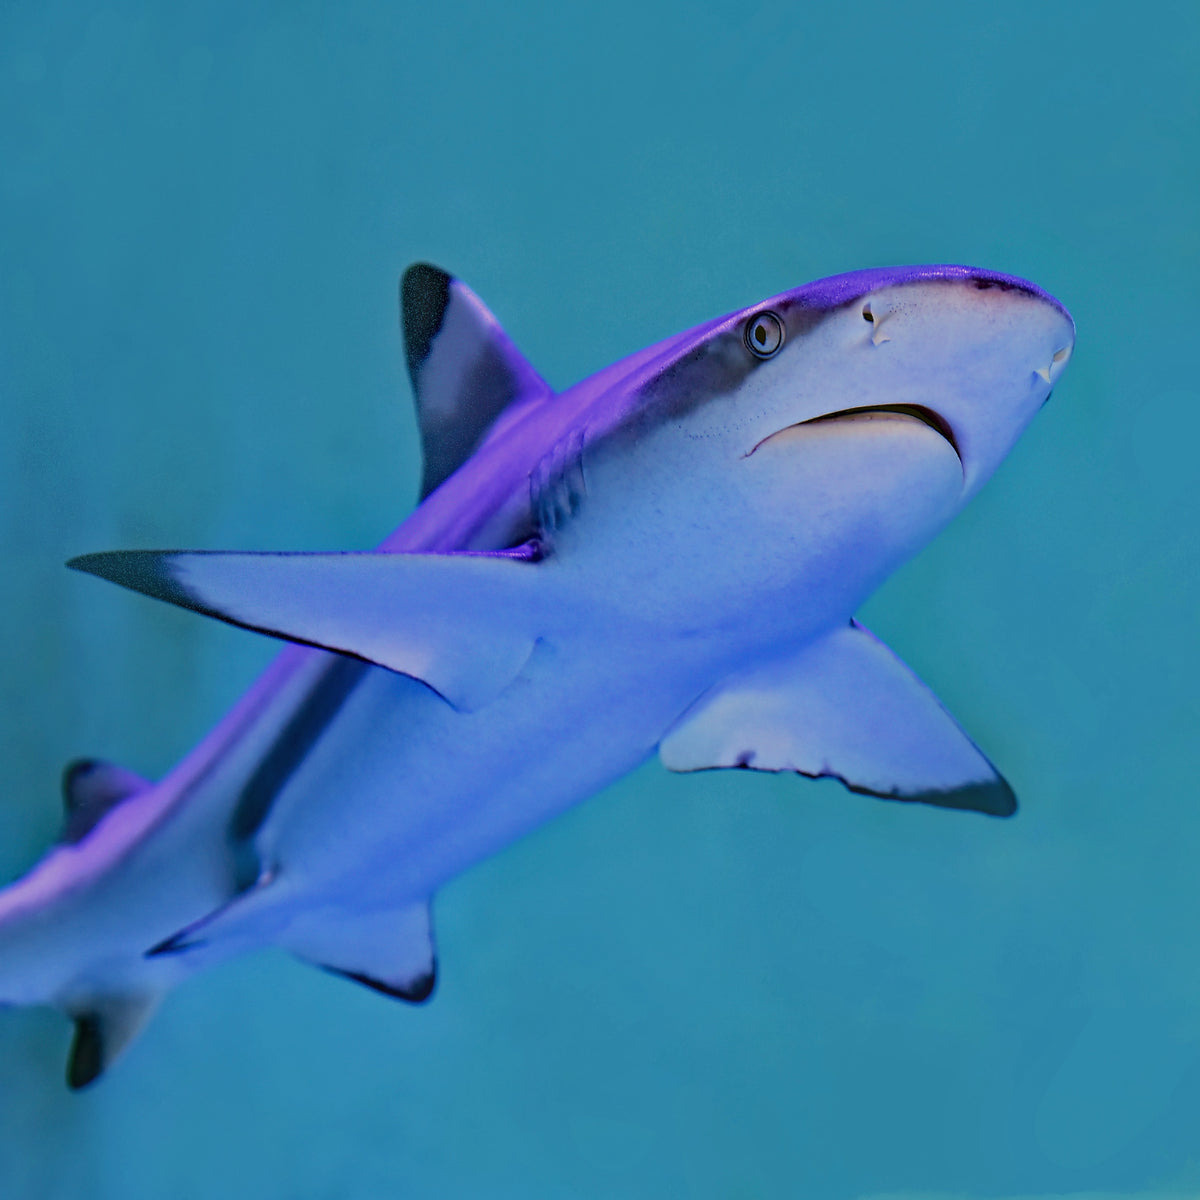 swimming blacktip reef shark - Connected Clothing Company - 10% of profits are donated to Oceana ocean conservation efforts